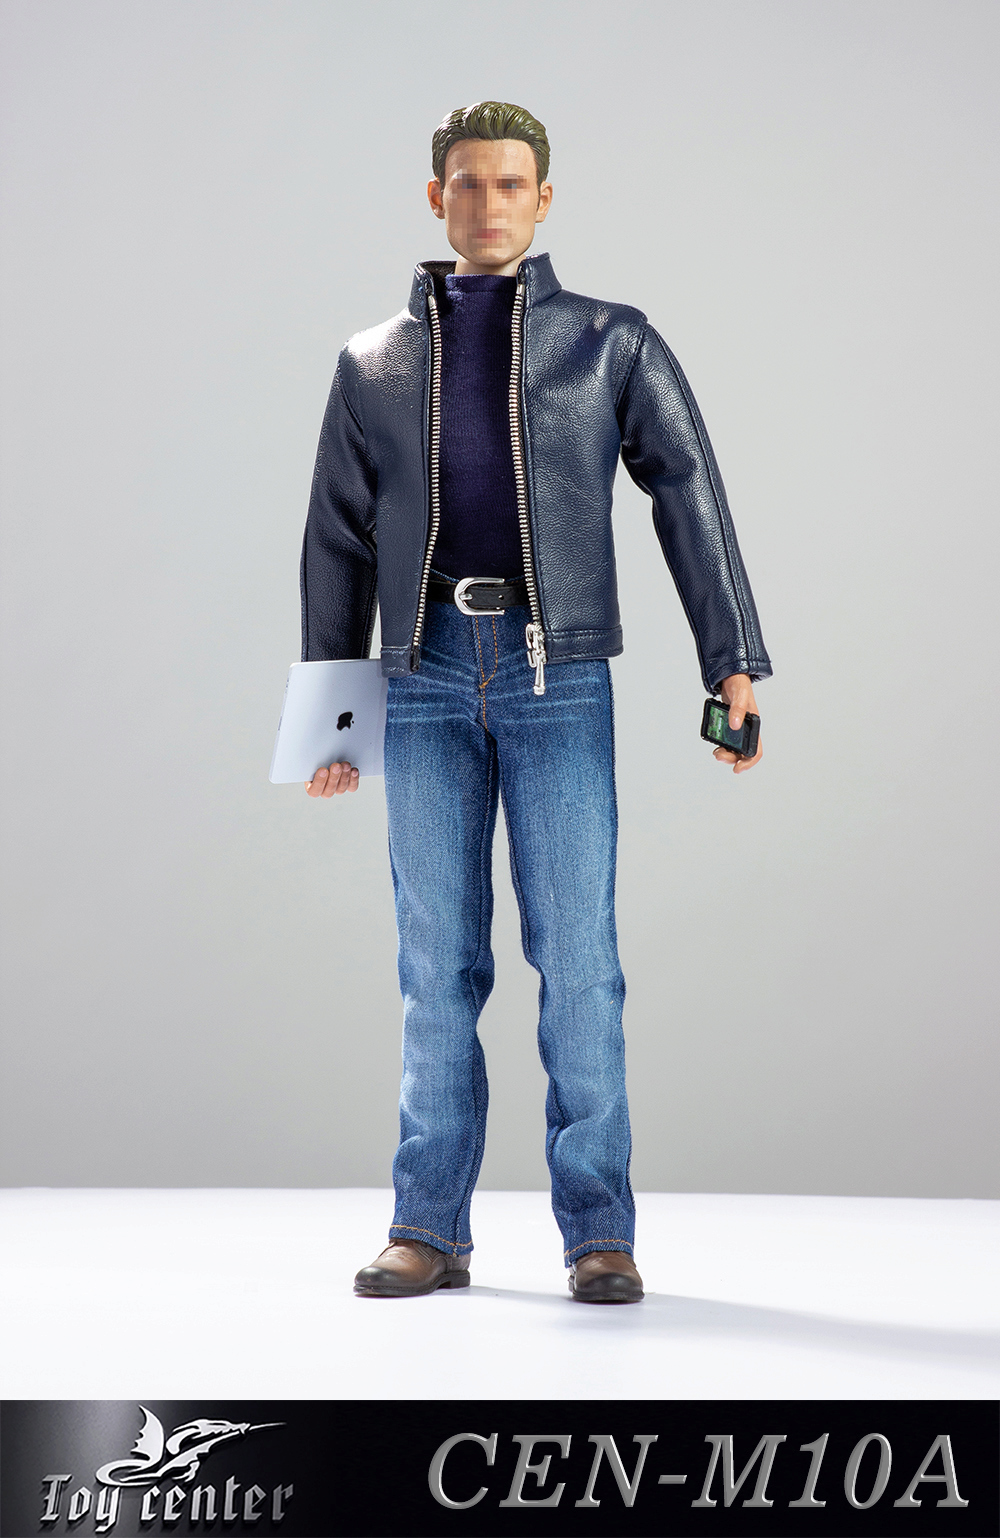 clothes - NEW PRODUCT: Toy center: 1/6 US team trend leather suit - a total of three colors A / B / C (CEN-M10 #) 13121611